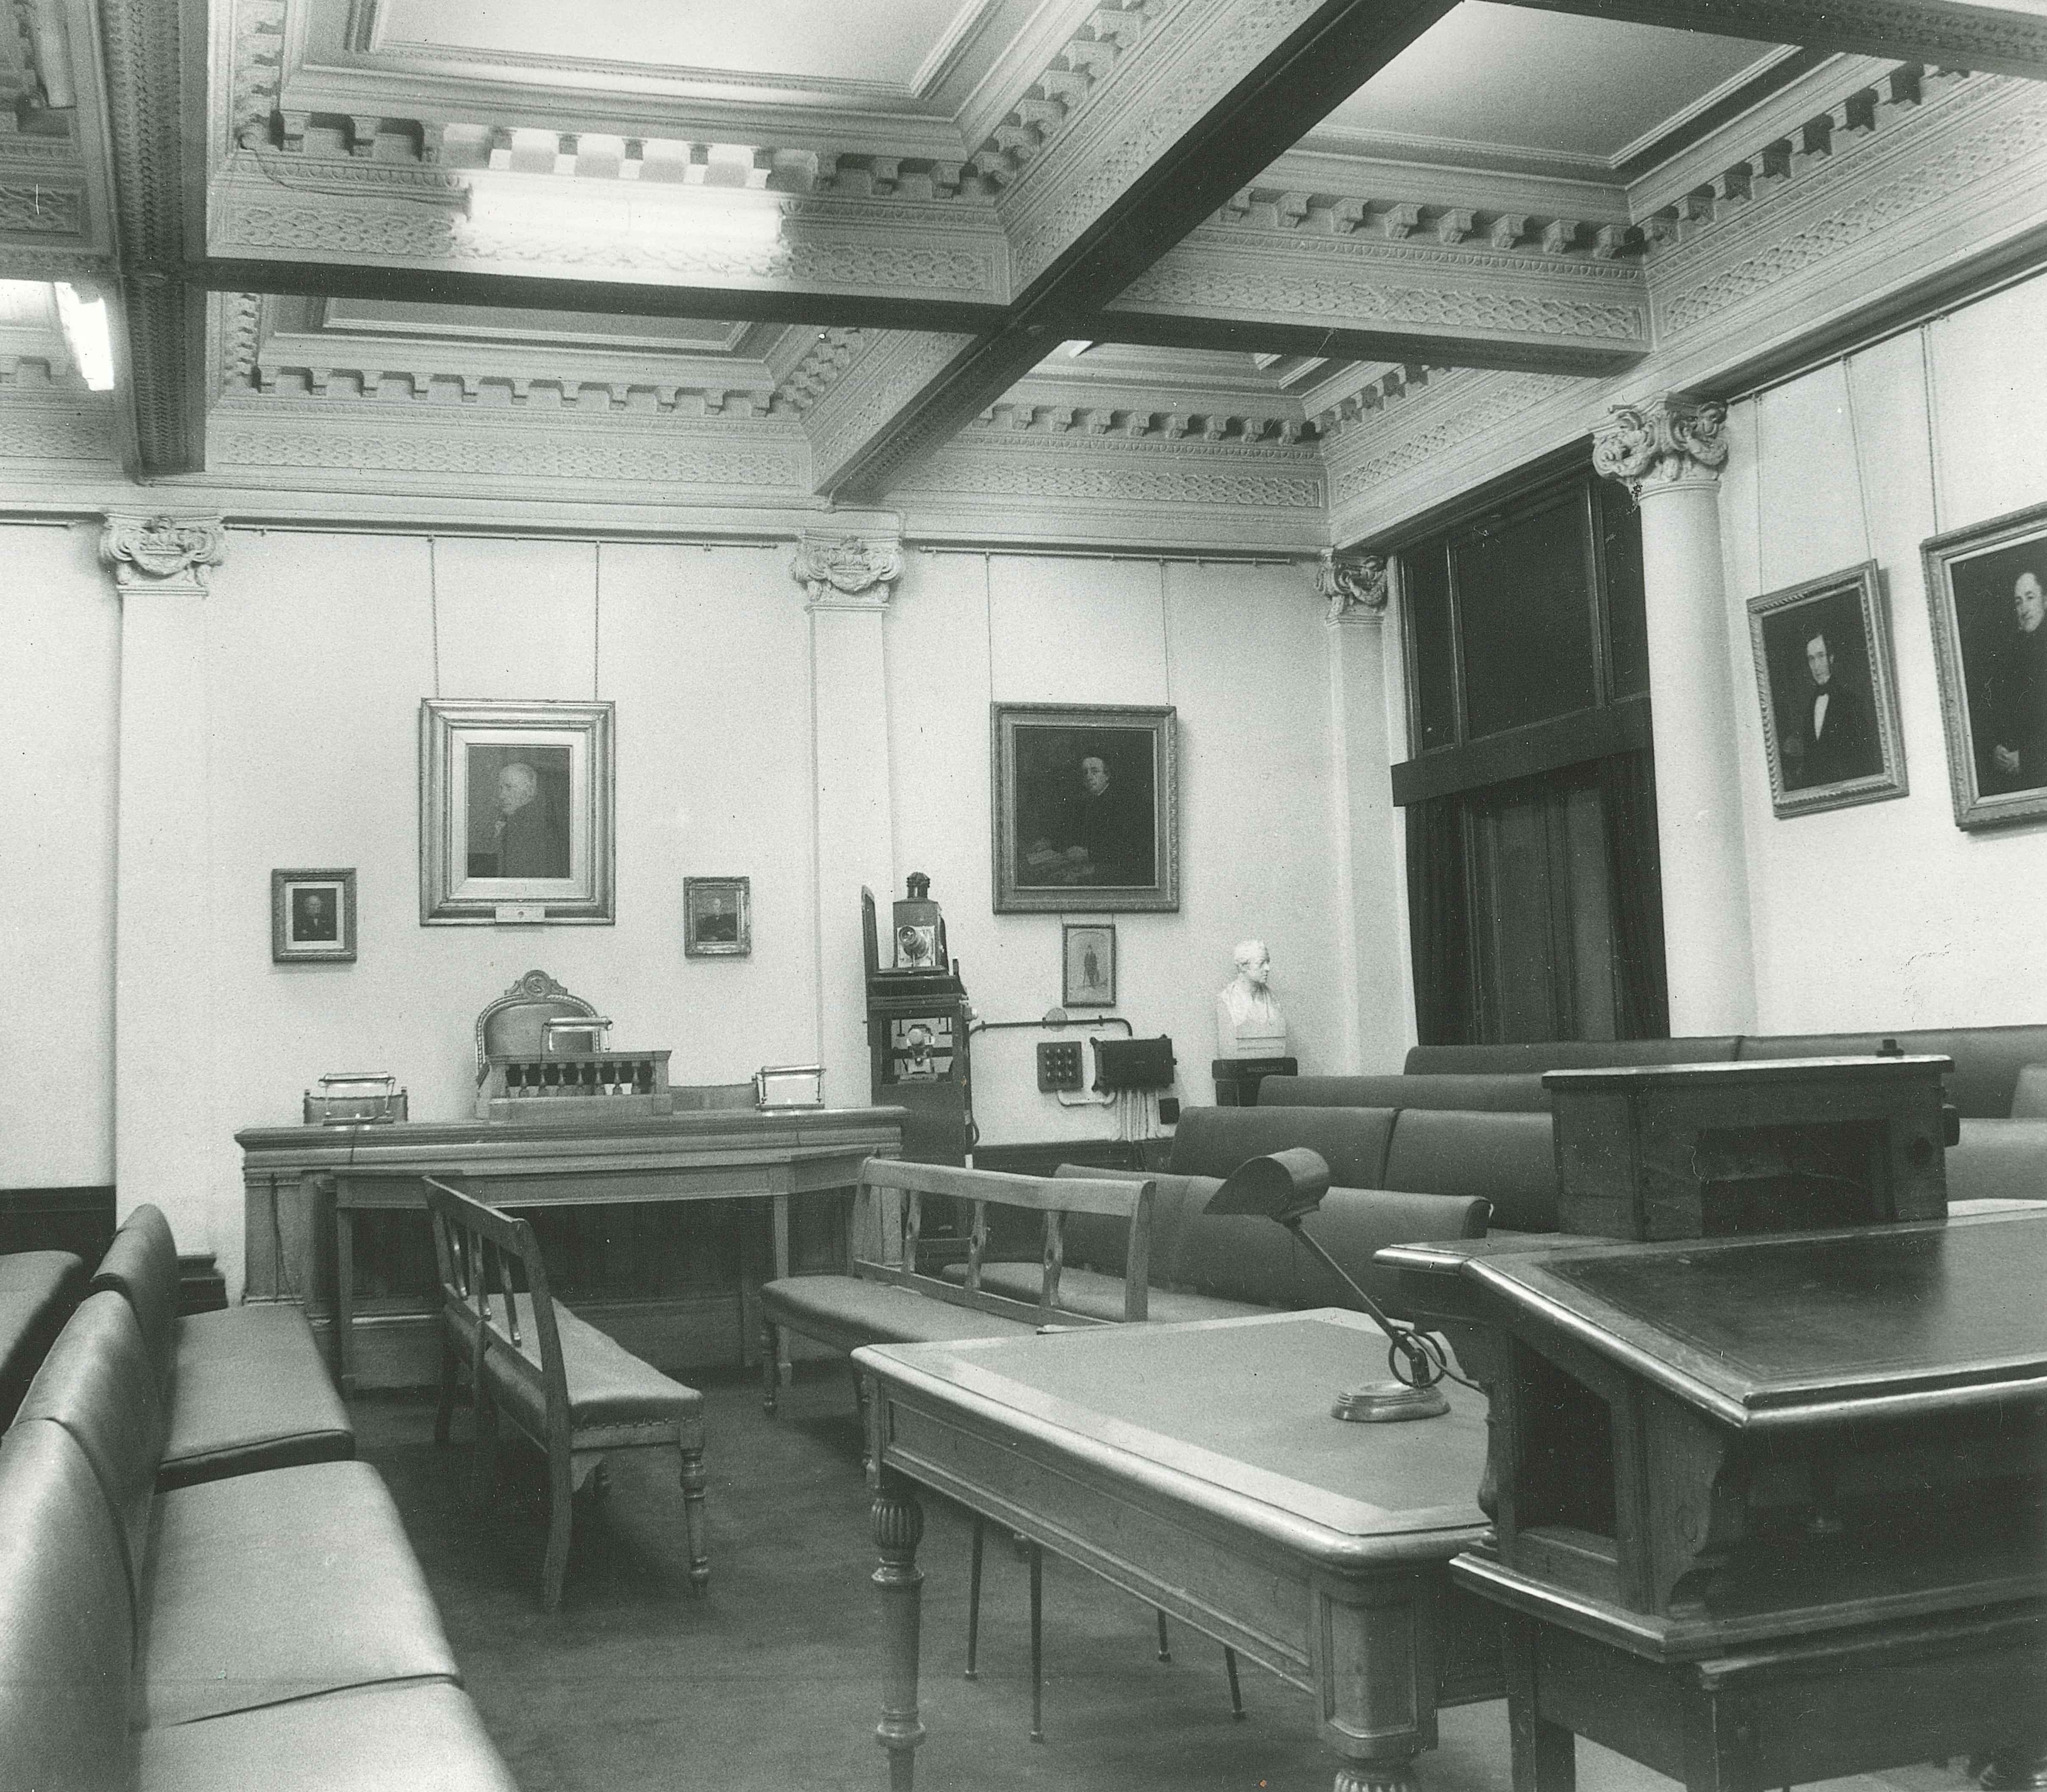 Meeting Room Old Stylee Geological Society Of London Blog - Old conference table